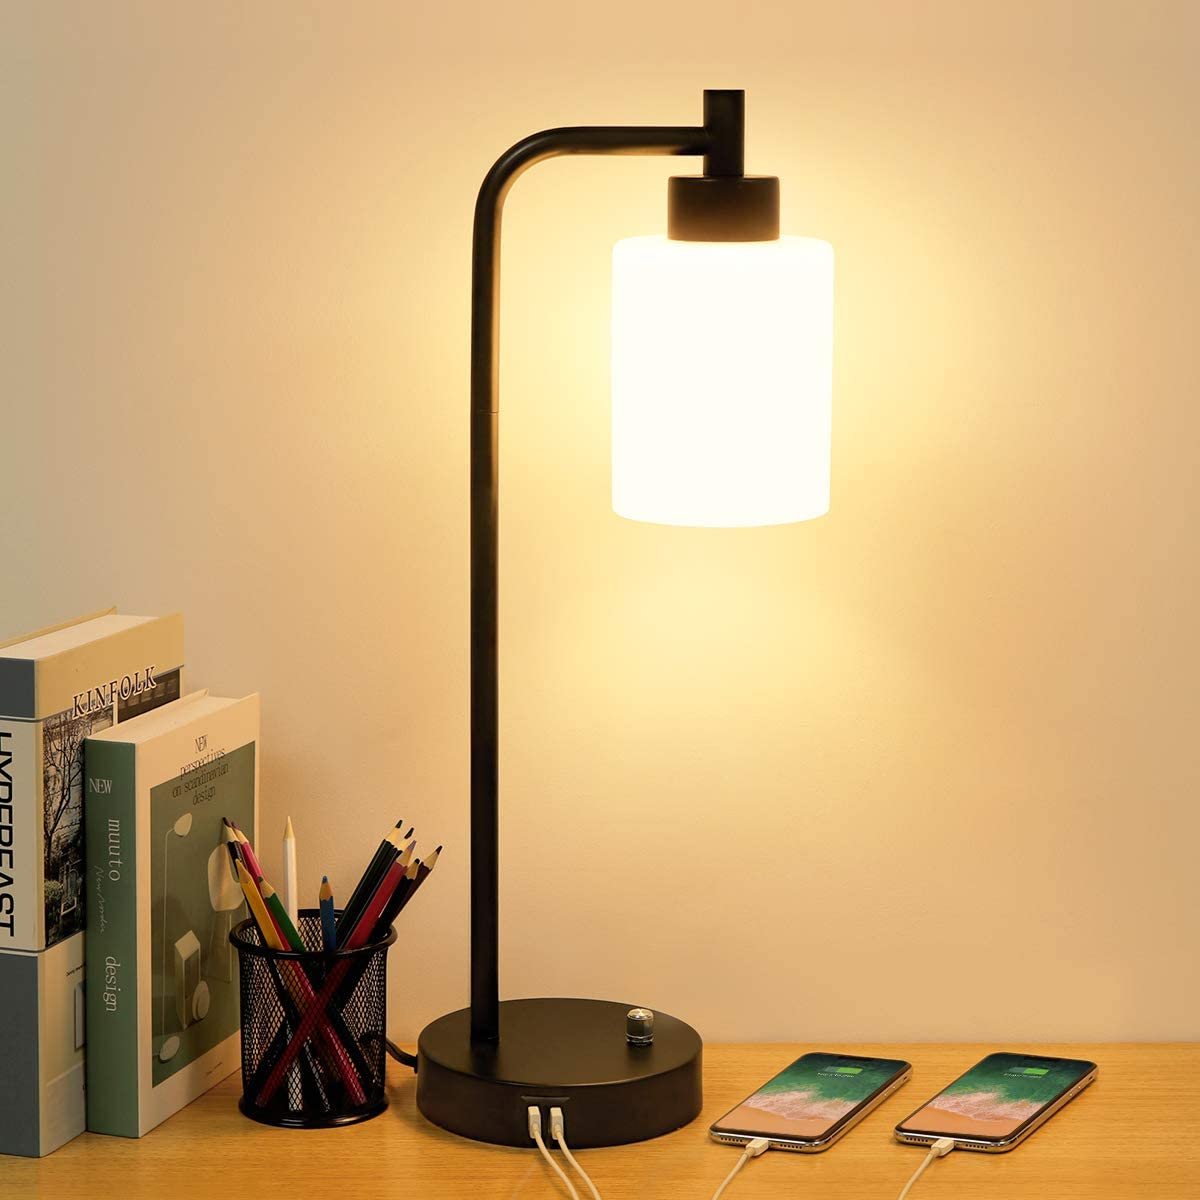 Boncoo Industrial USB Table Lamp Stepless Dimmable Bedside Desk Lamp with 2 USB Charging Ports Vintage Nightstand Lamps Opal Glass Shade Simple Reading Lamp for Living Room Office 6W LED Bulb Included